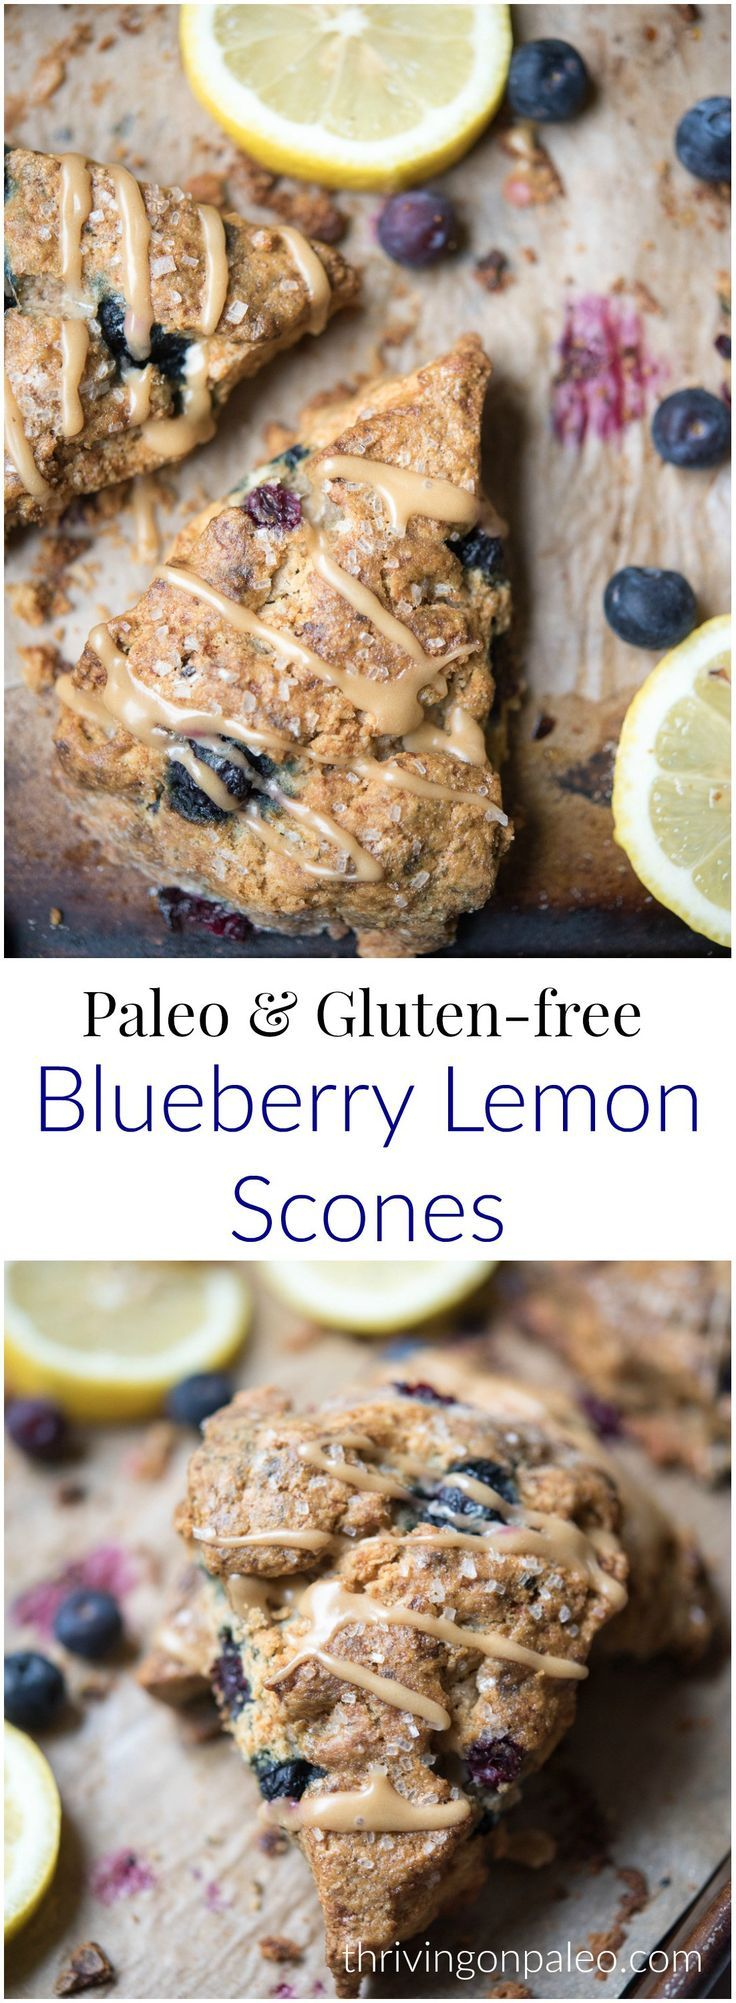 17 Best images about Paleo: Biscuits & Scones on Pinterest ...